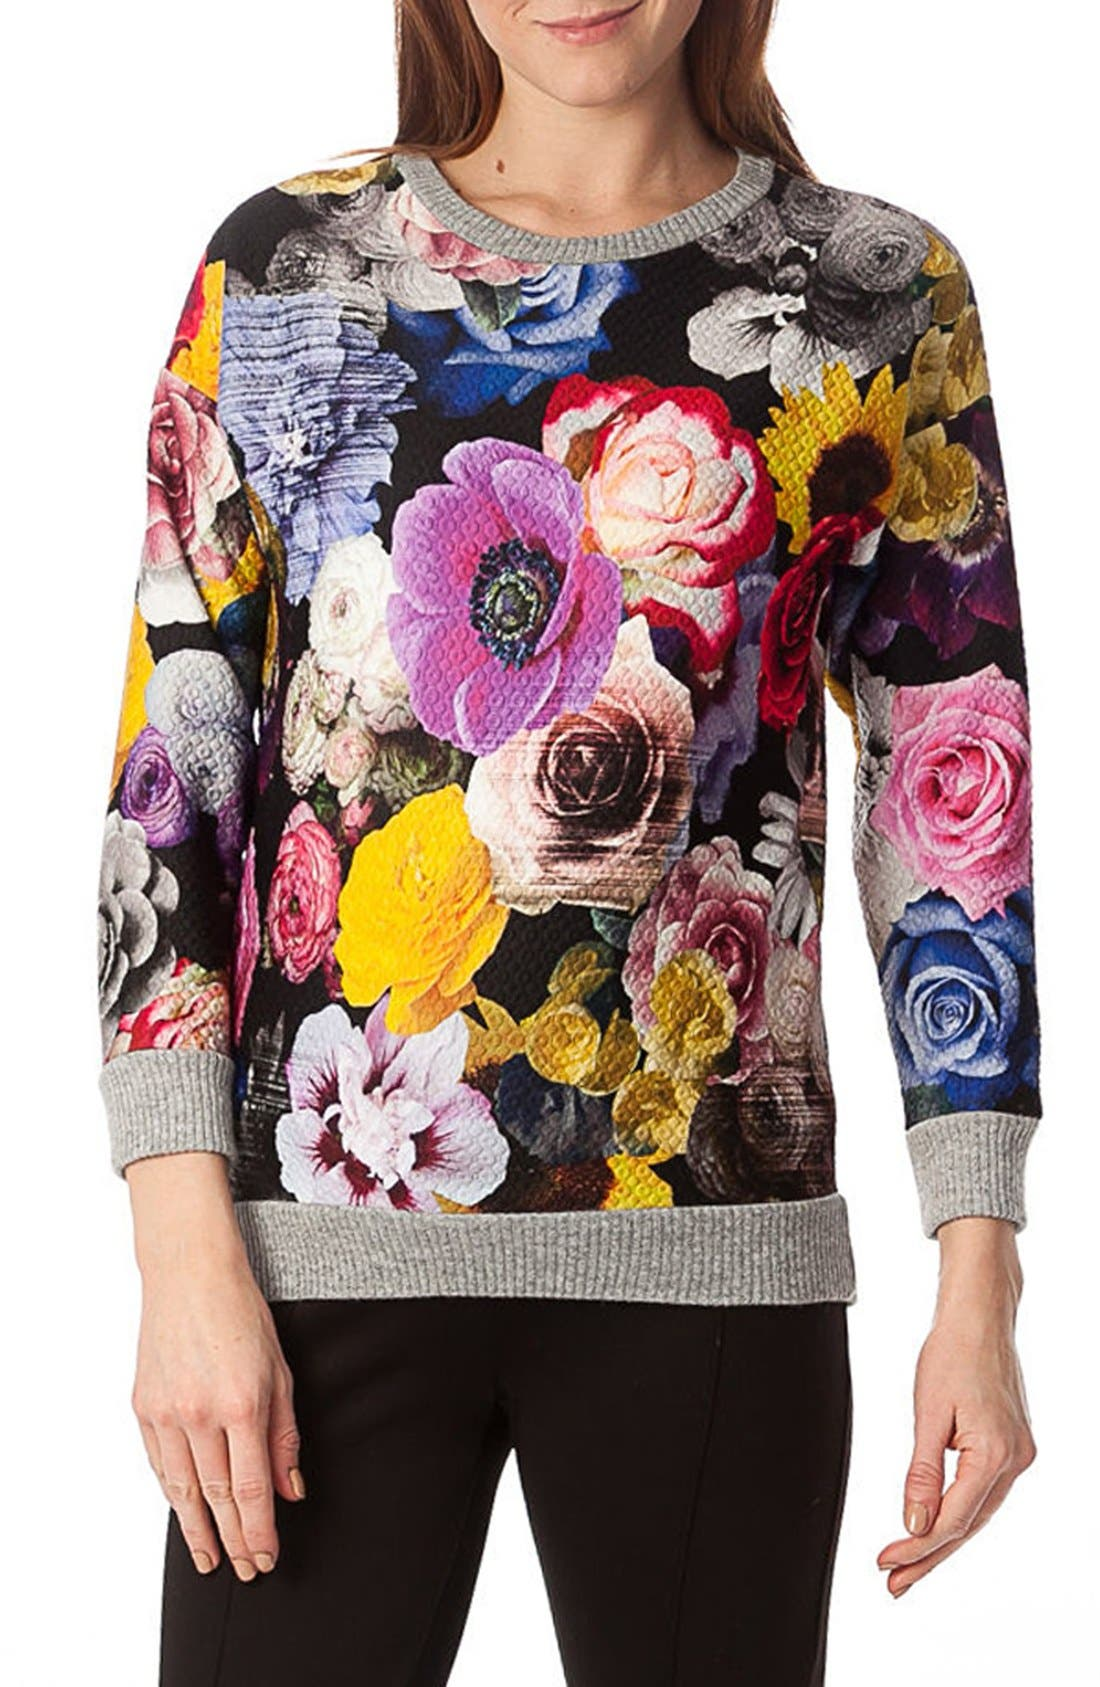 'Ocean' Floral Print Quilted Maternity Sweatshirt,                             Alternate thumbnail 4, color,                             Collage Of Flowers